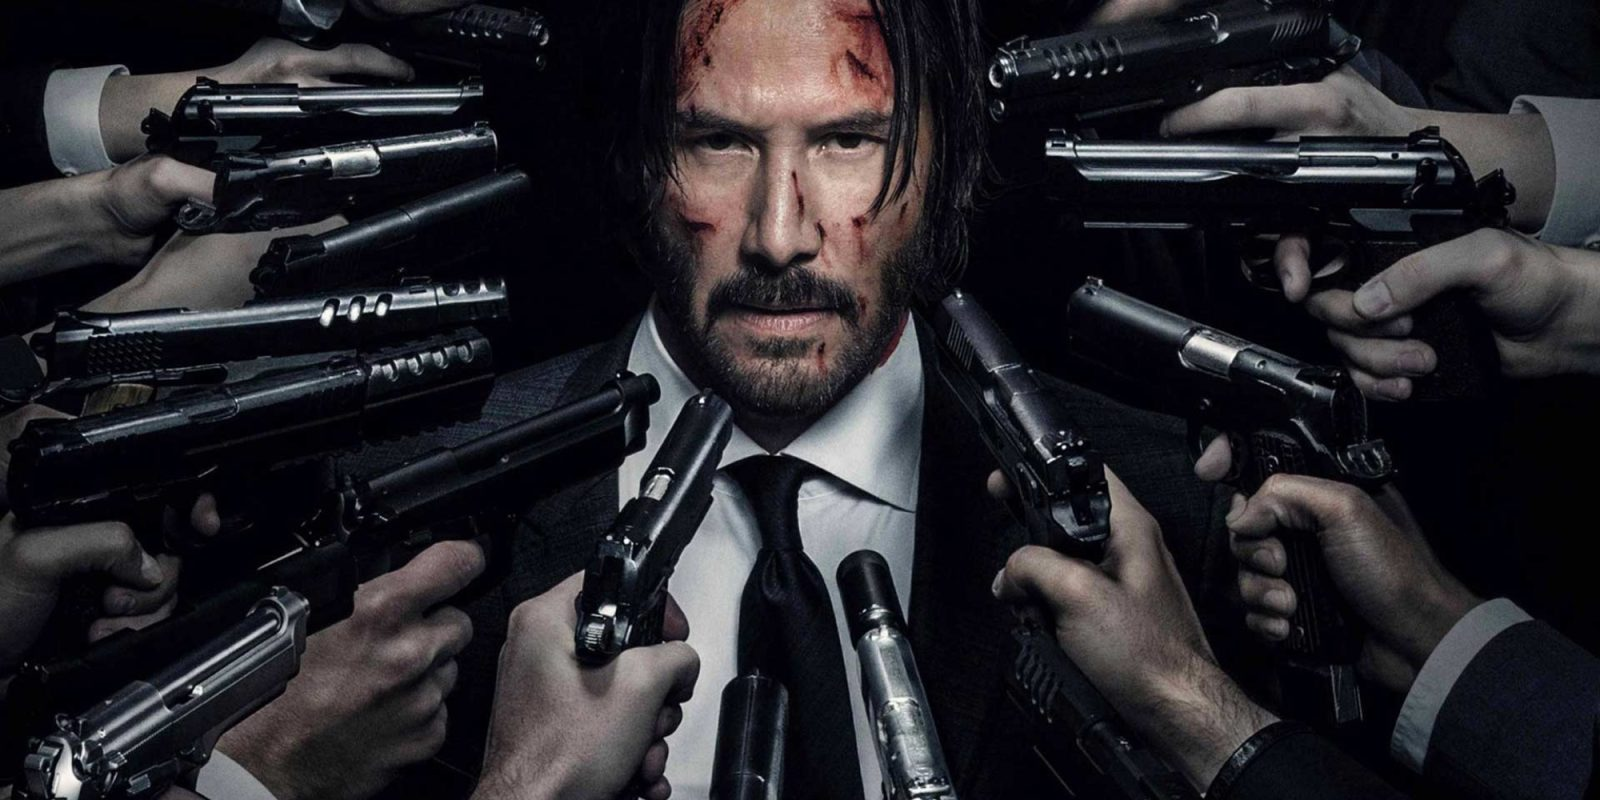 B&N Father's Day movie sale: John Wick 1 & 2, Mission